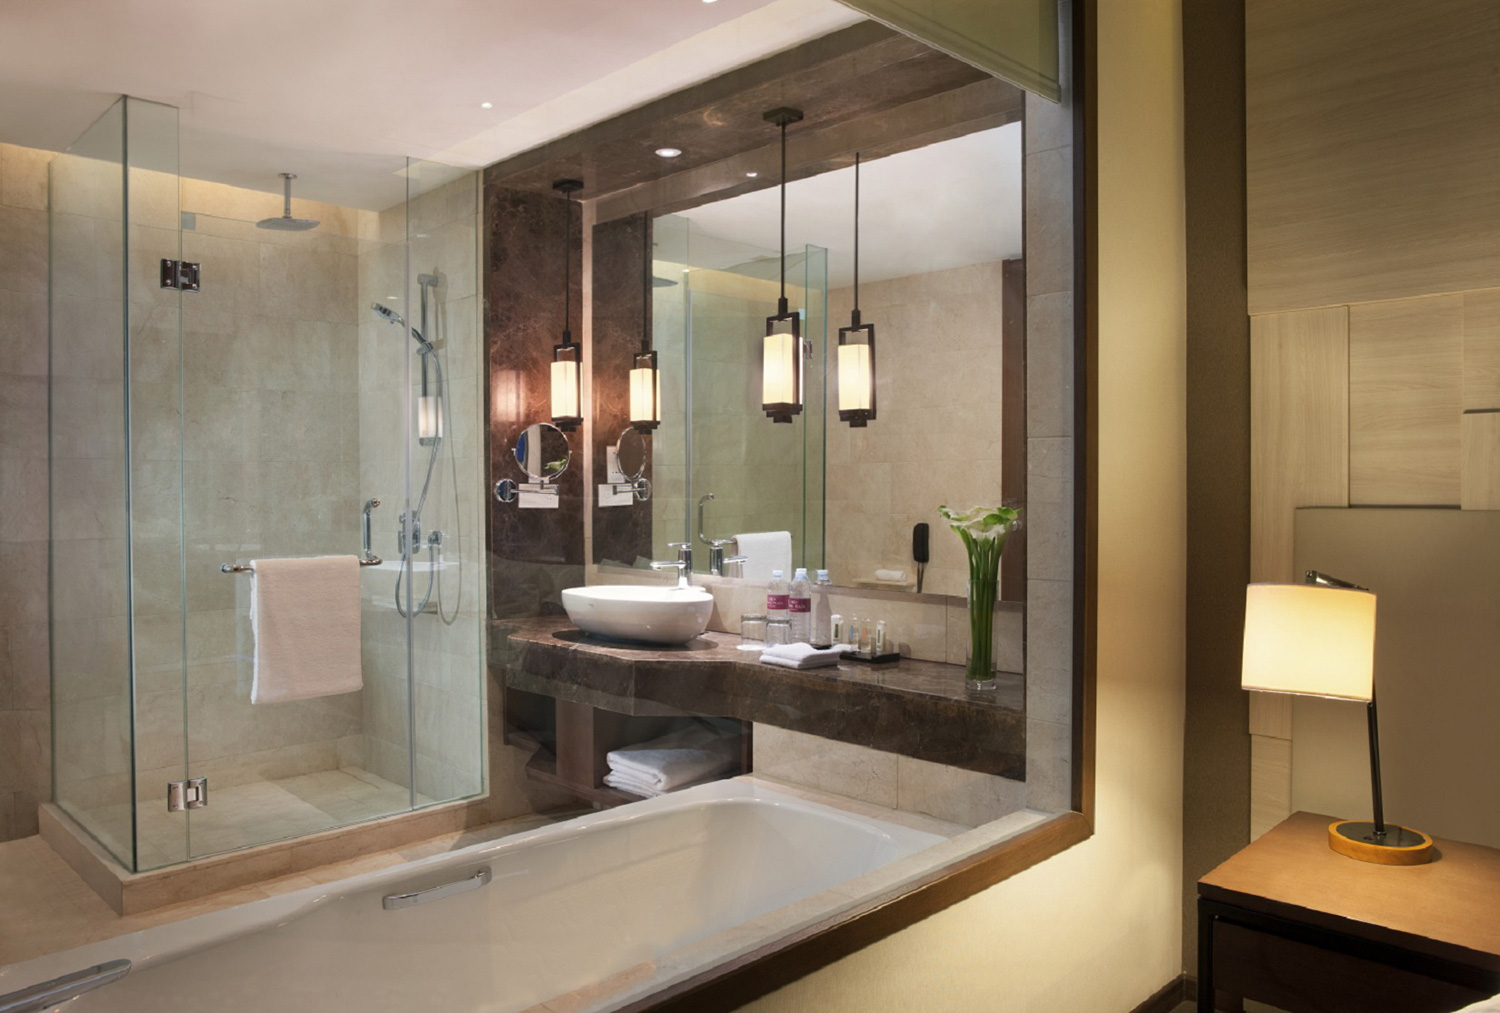 Bathroom-Set-at-King-Bed-Deluxe